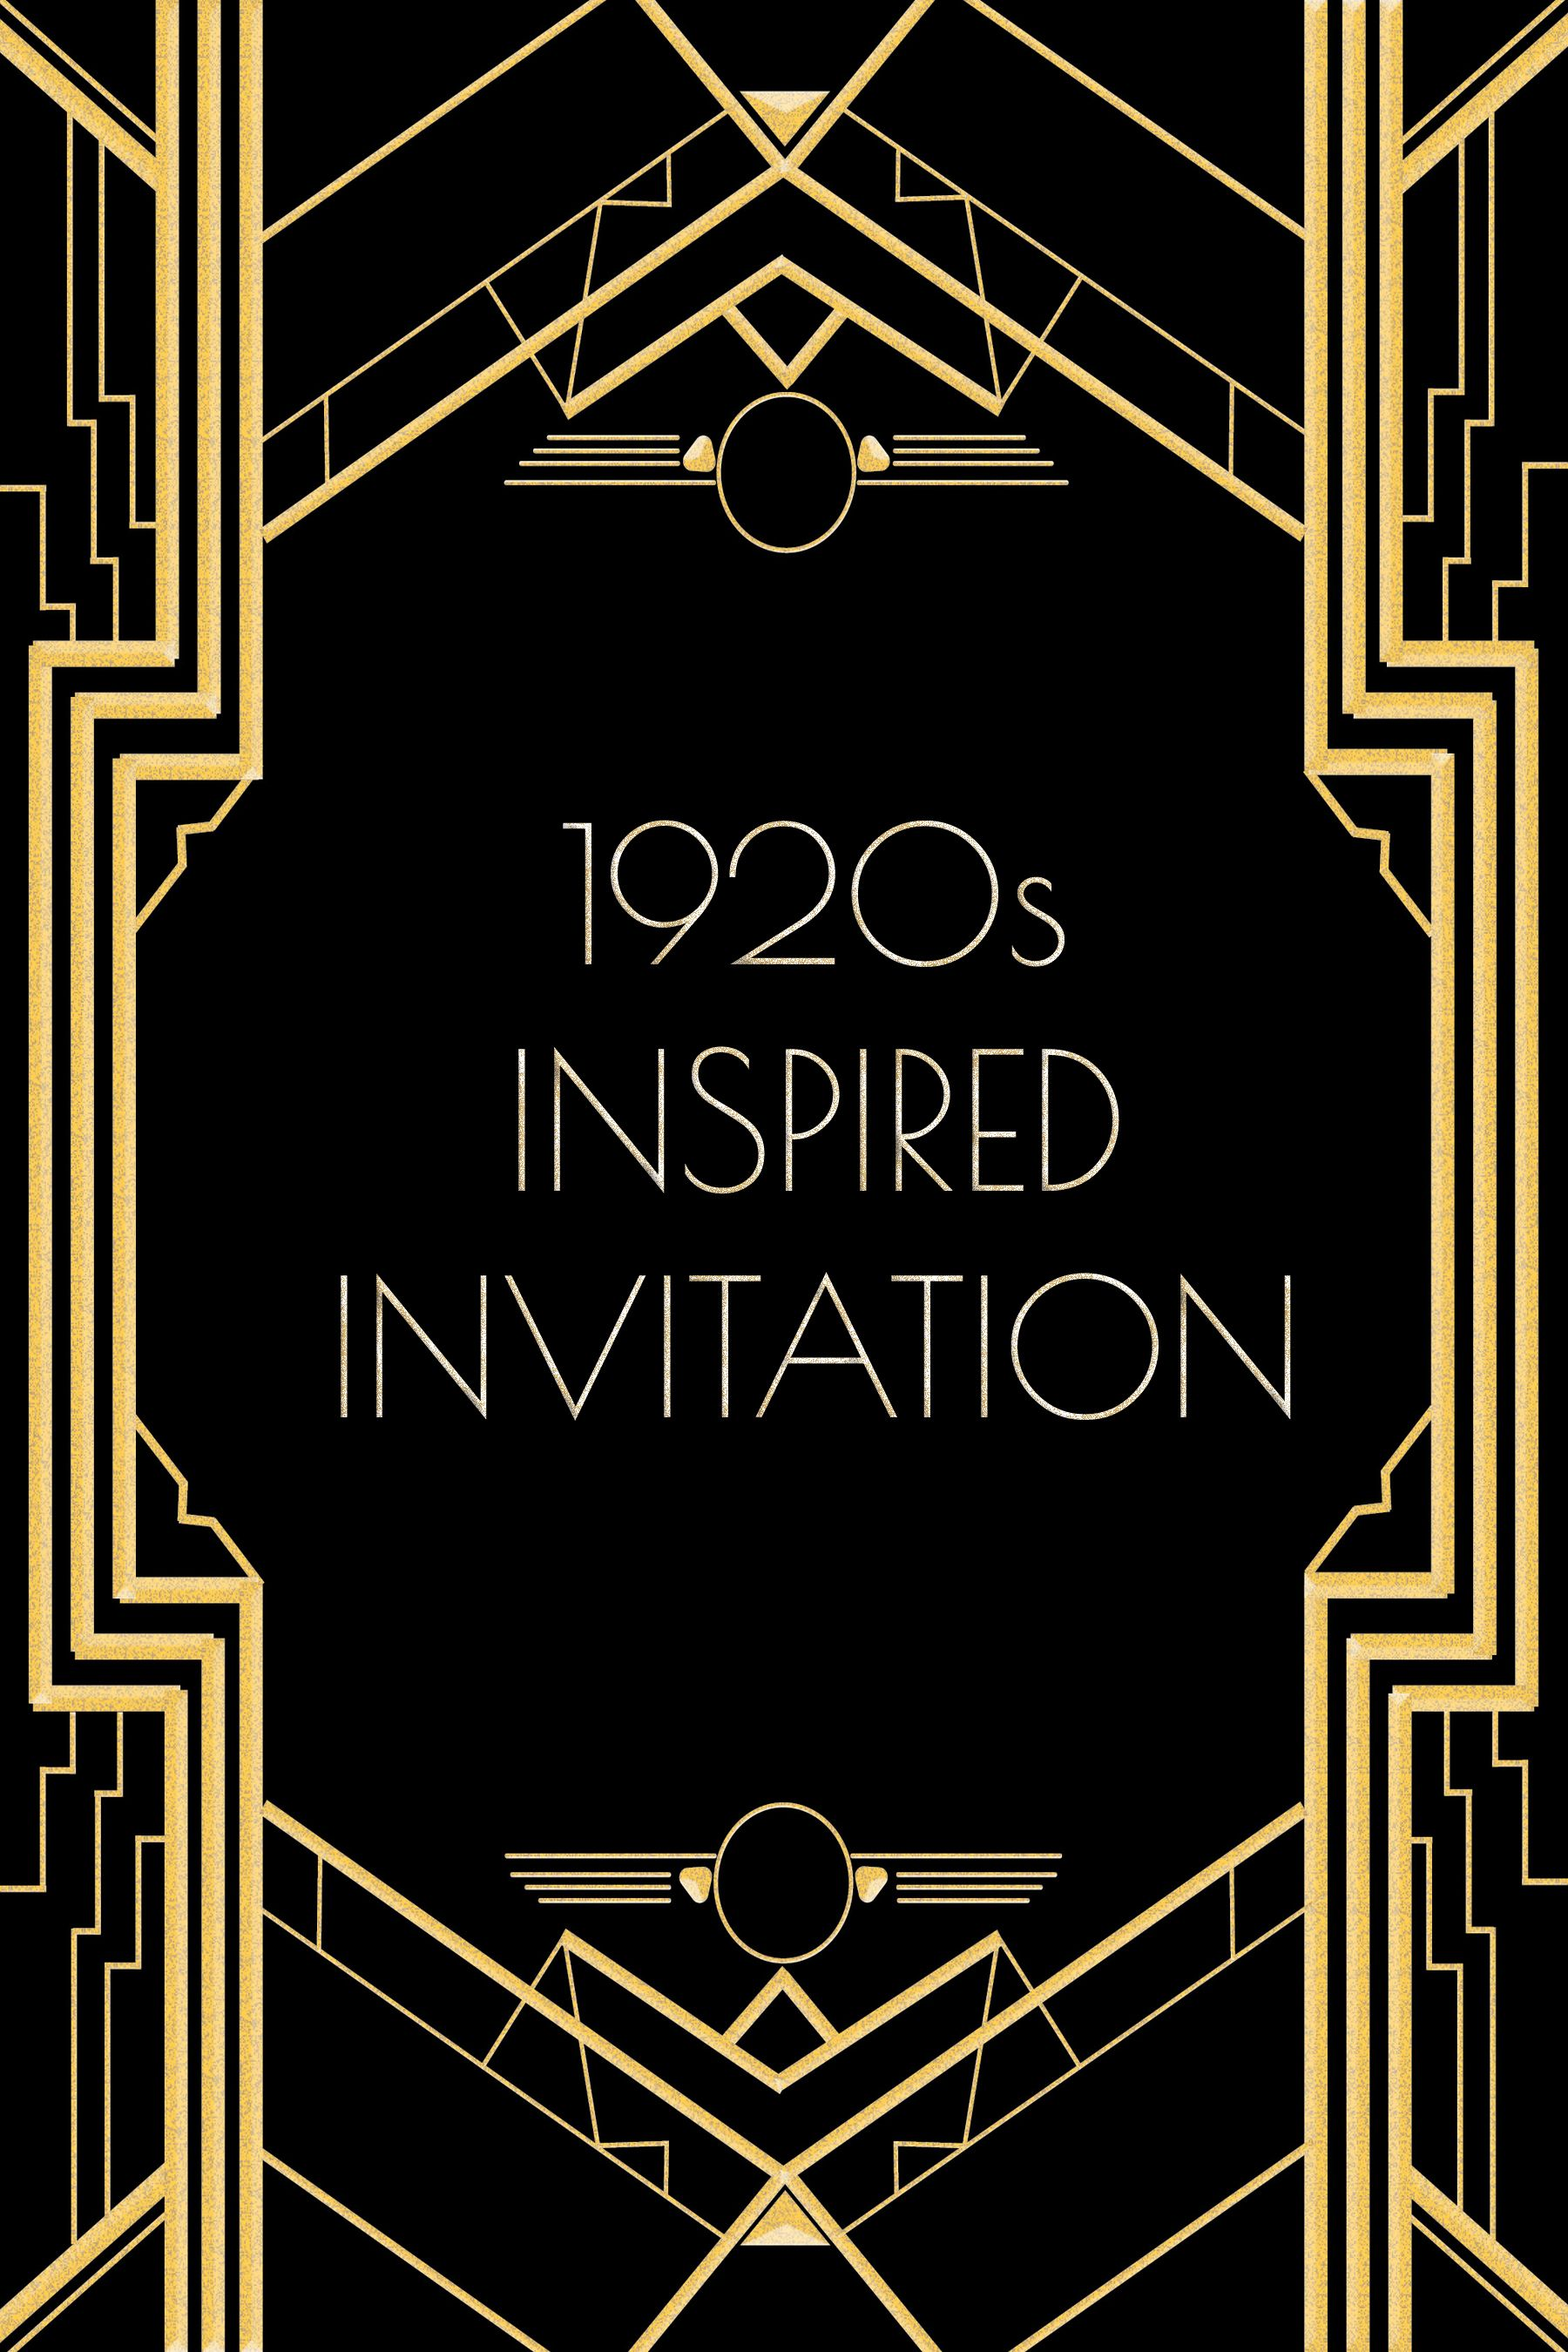 20u0027s Years Cabaret Photos | Use This 1920s Inspired Invitation Template For  A Gatsby .  Invites Template